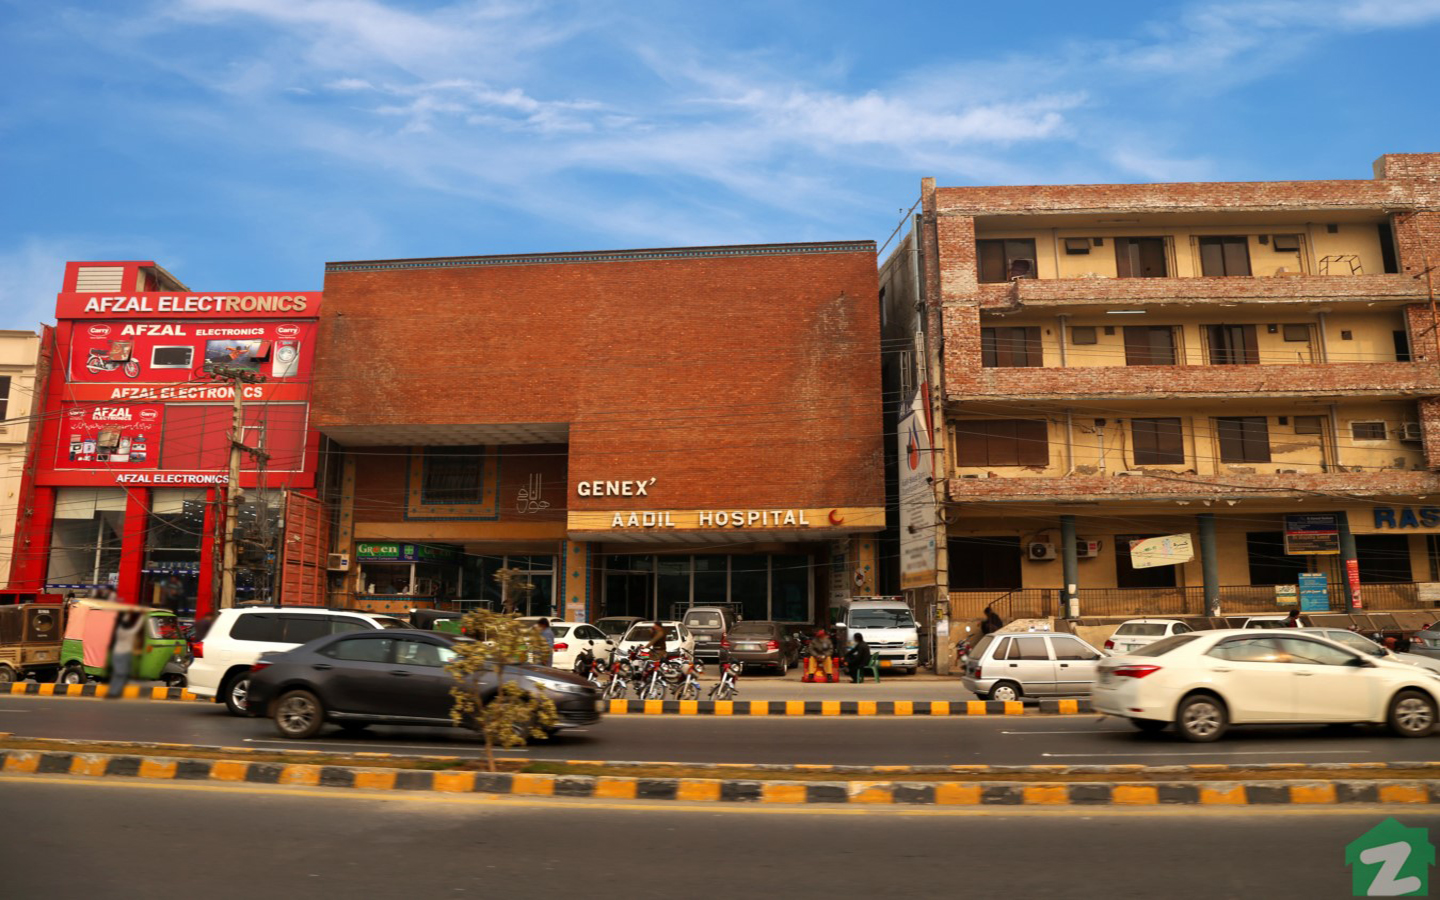 Genex Aadil Hospital in DHA Lahore